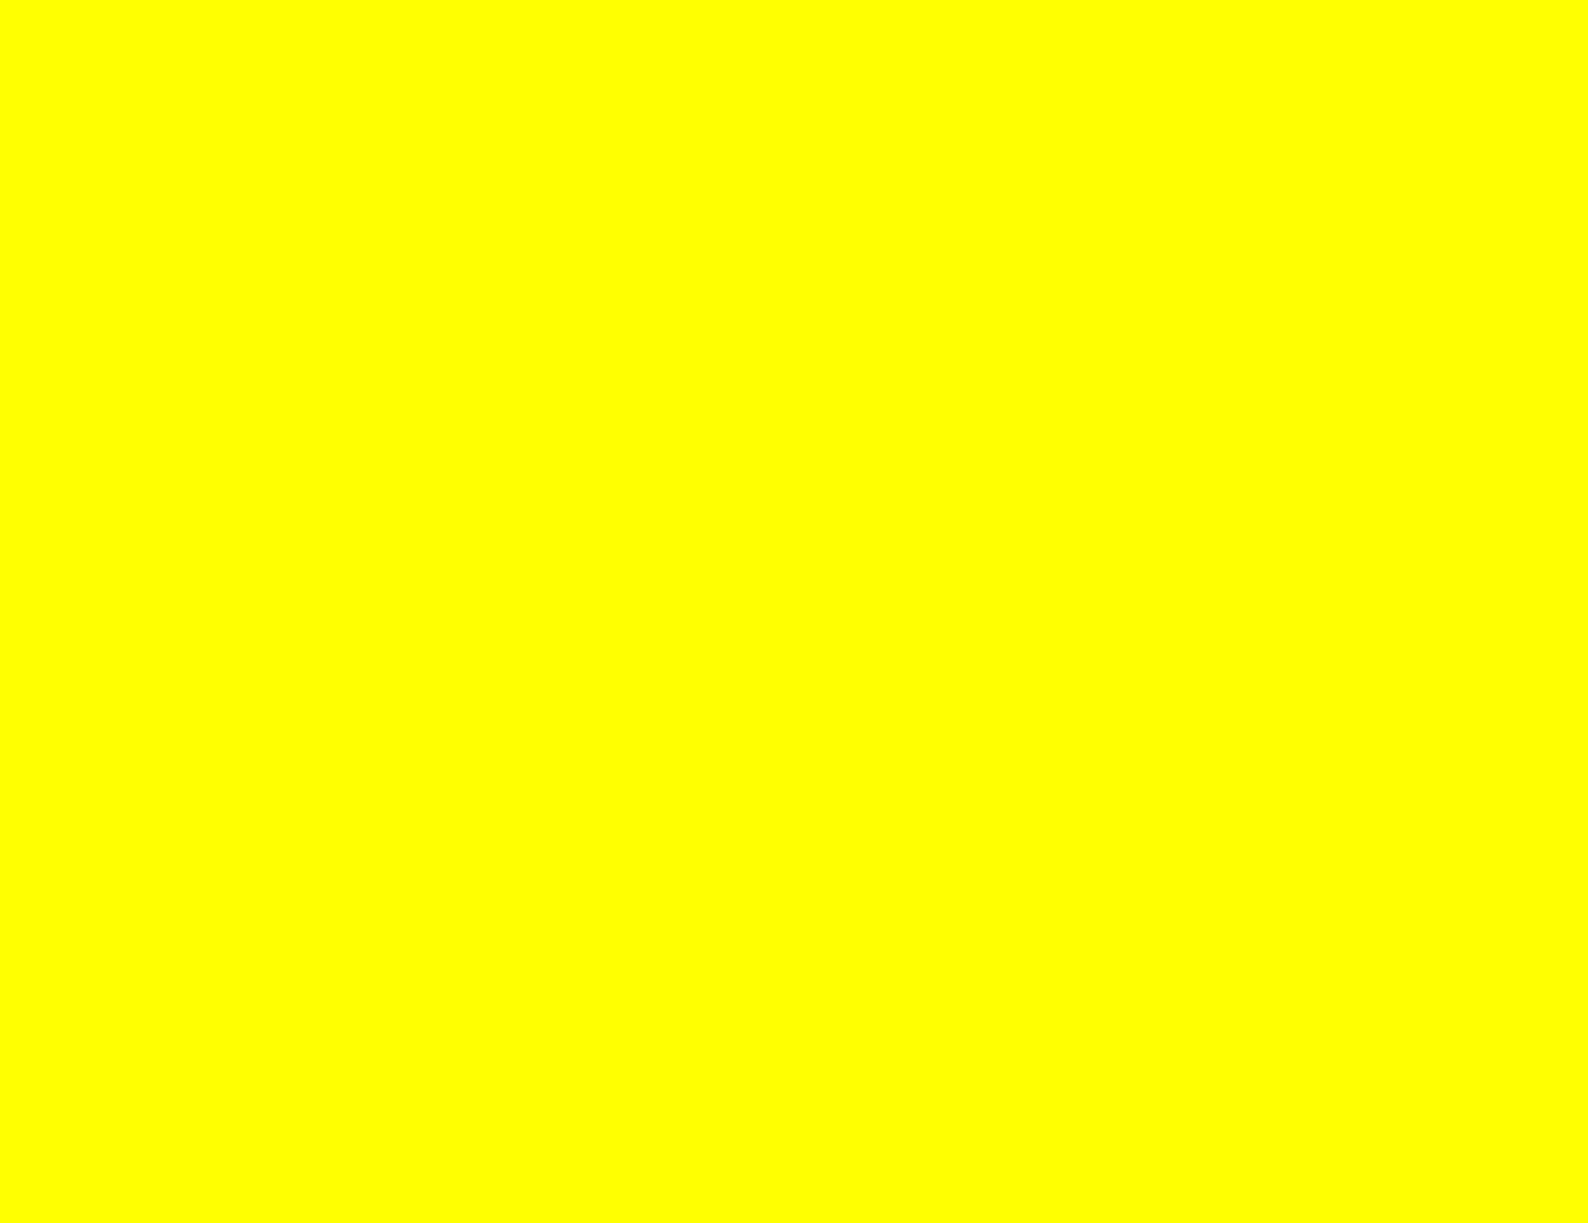 Acrylic Pmma Opaque Color Sheet 3 0mm Thickness Etsy In 2020 Solid Color Backgrounds Yellow Wallpaper Yellow Background